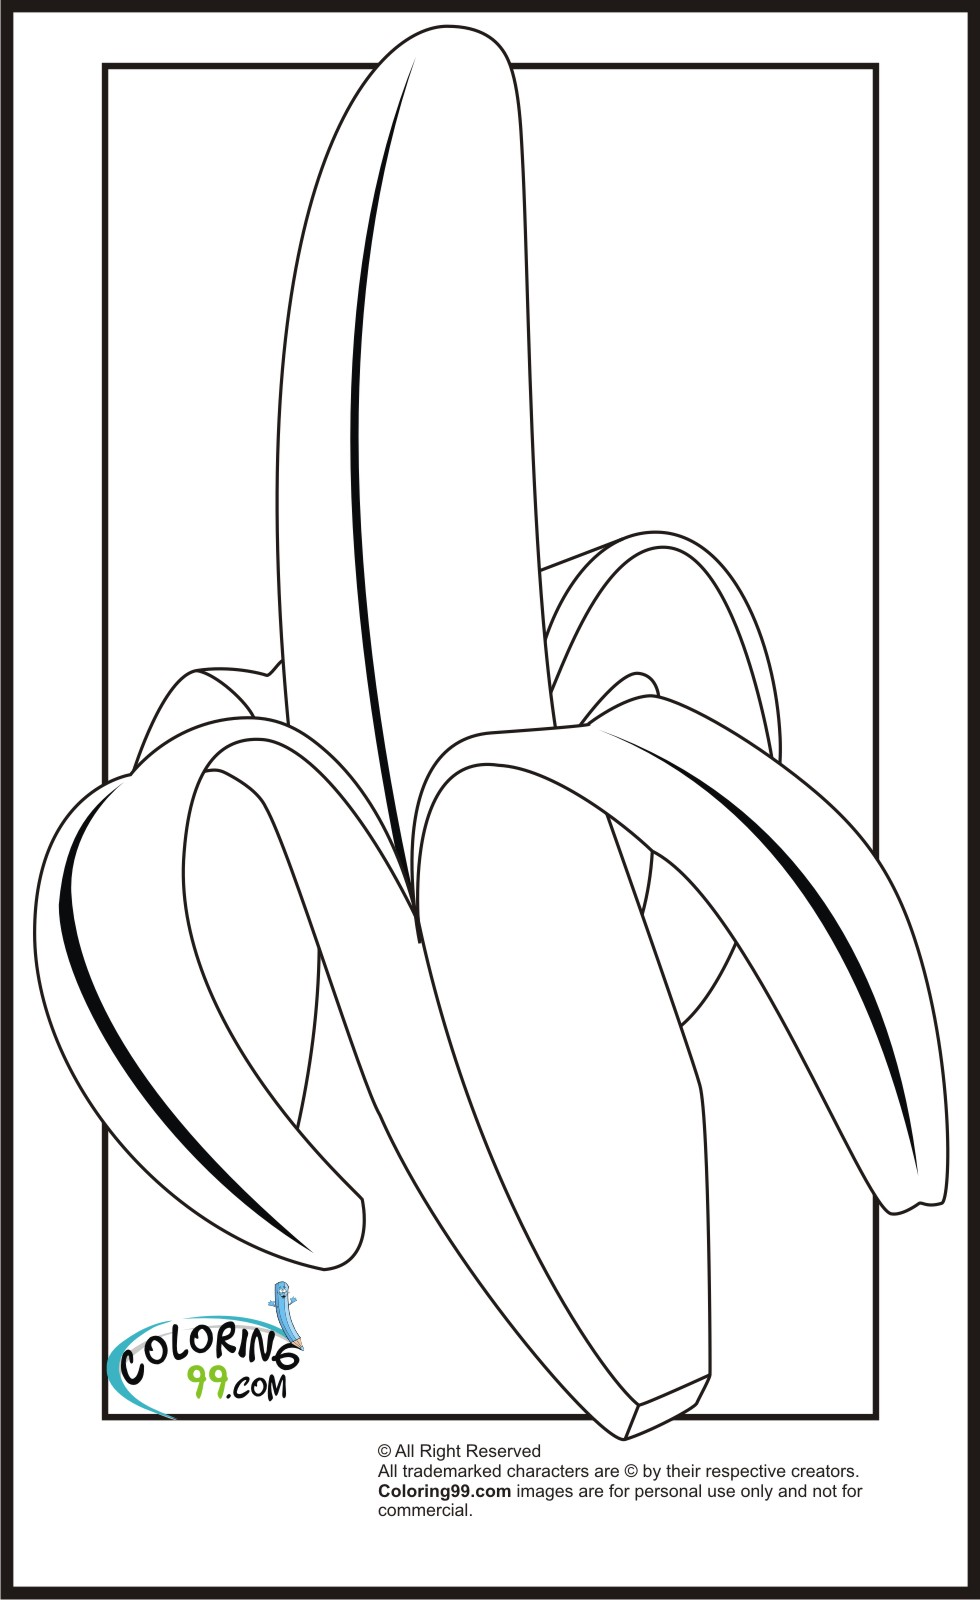 Banana coloring pages team colors for Banana color page